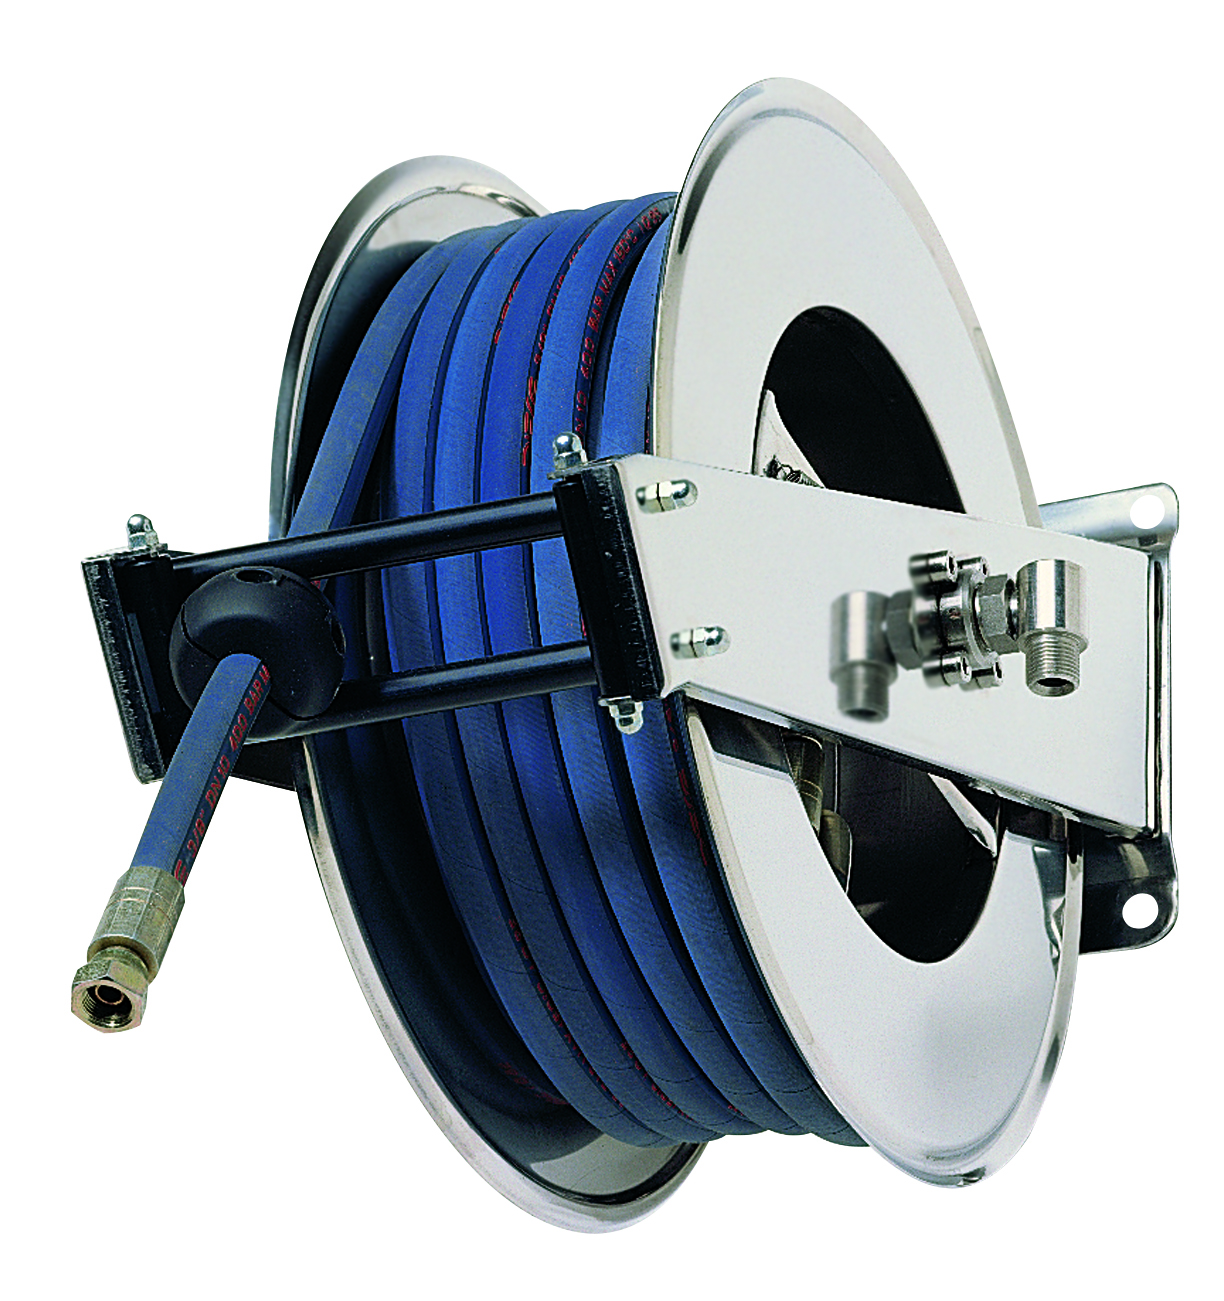 AV1500 400 - Hose reels for Water -  High Pressure up to 400 BAR/5800 PSI